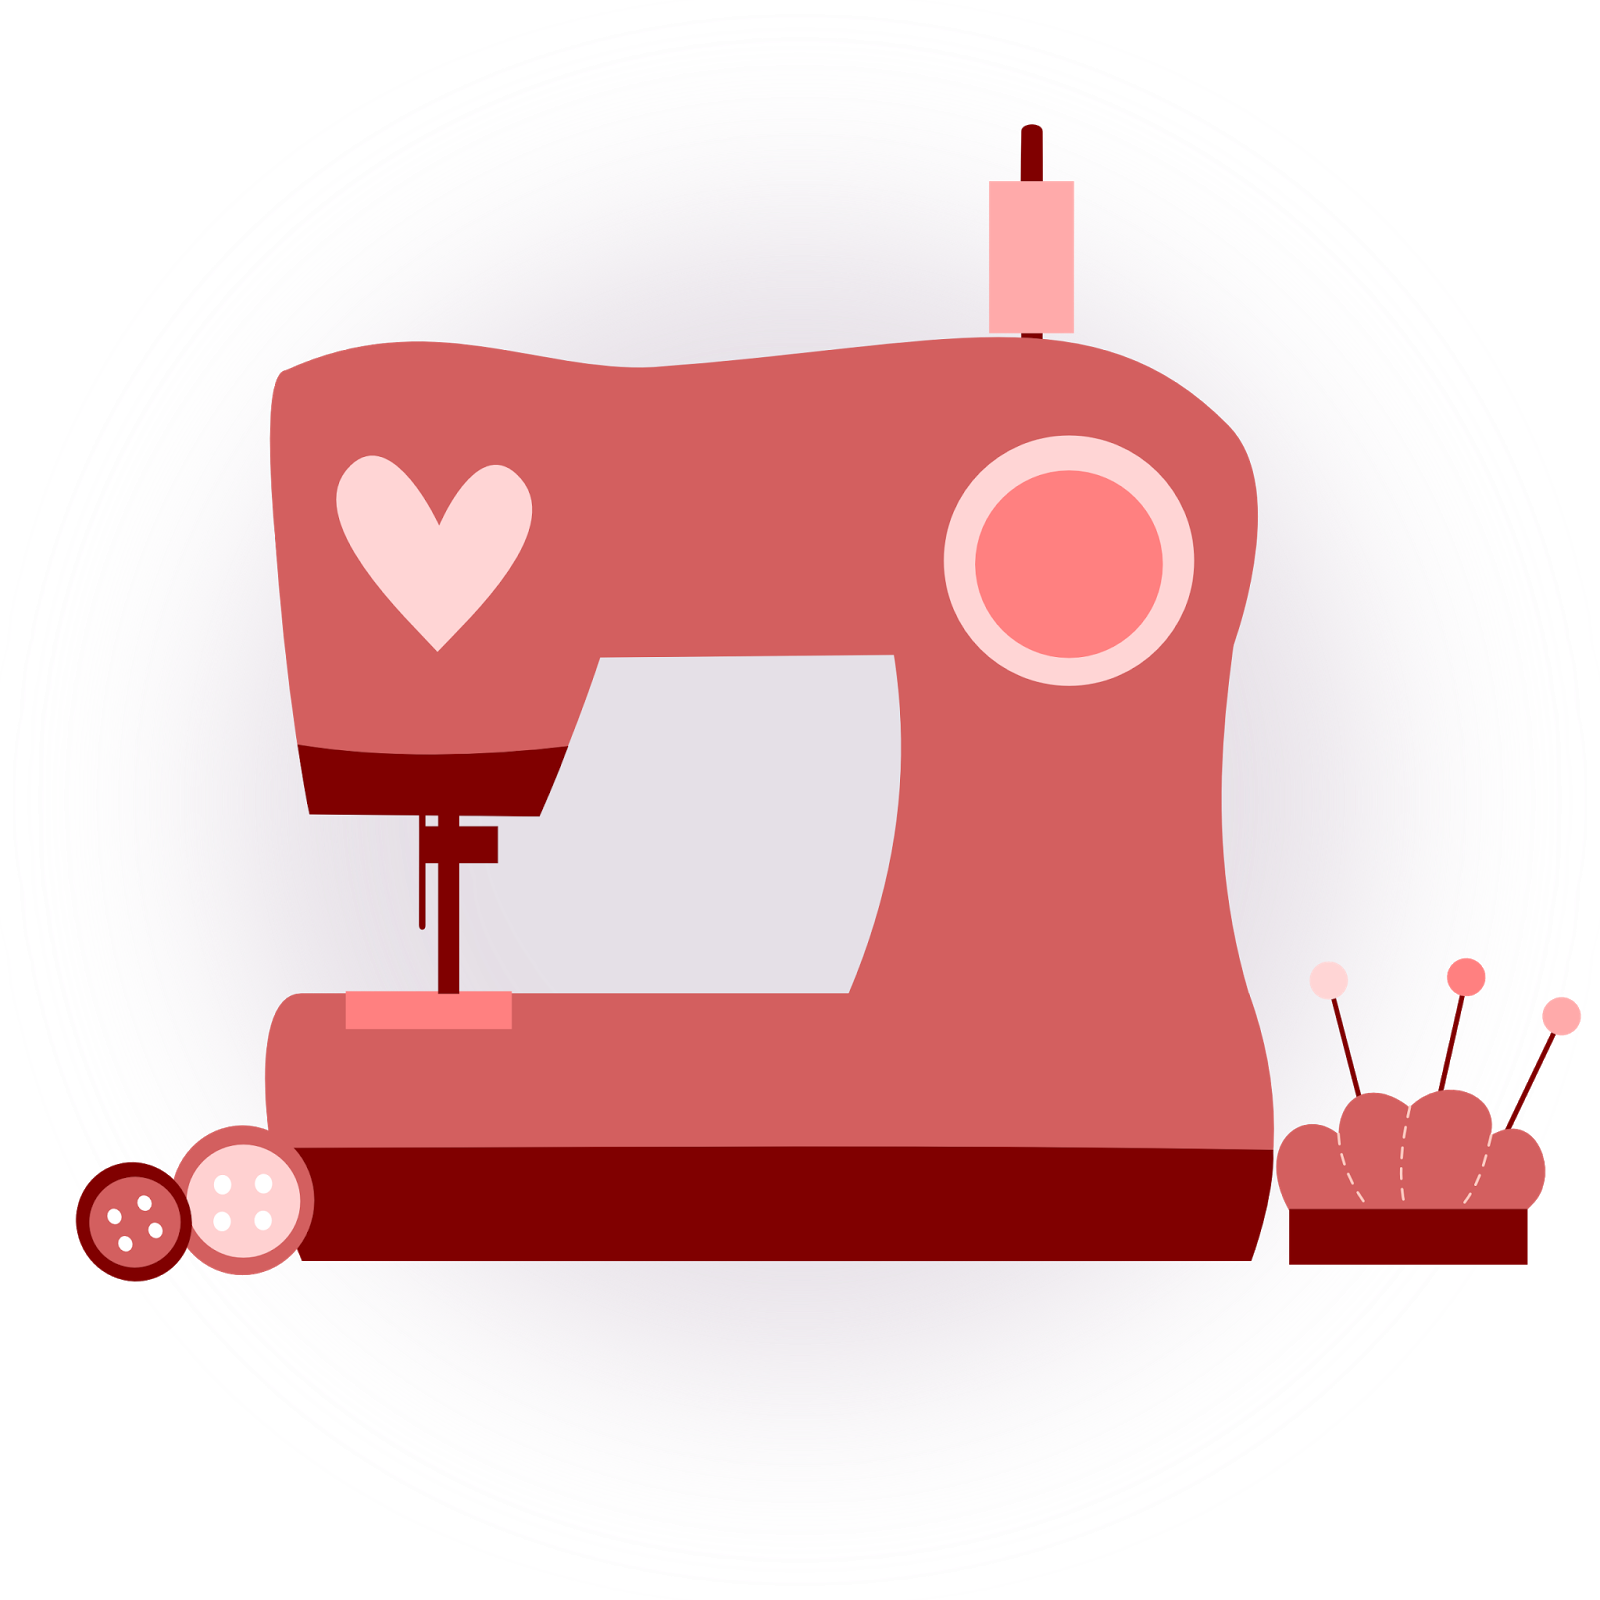 Inkscape clipart - Clipground